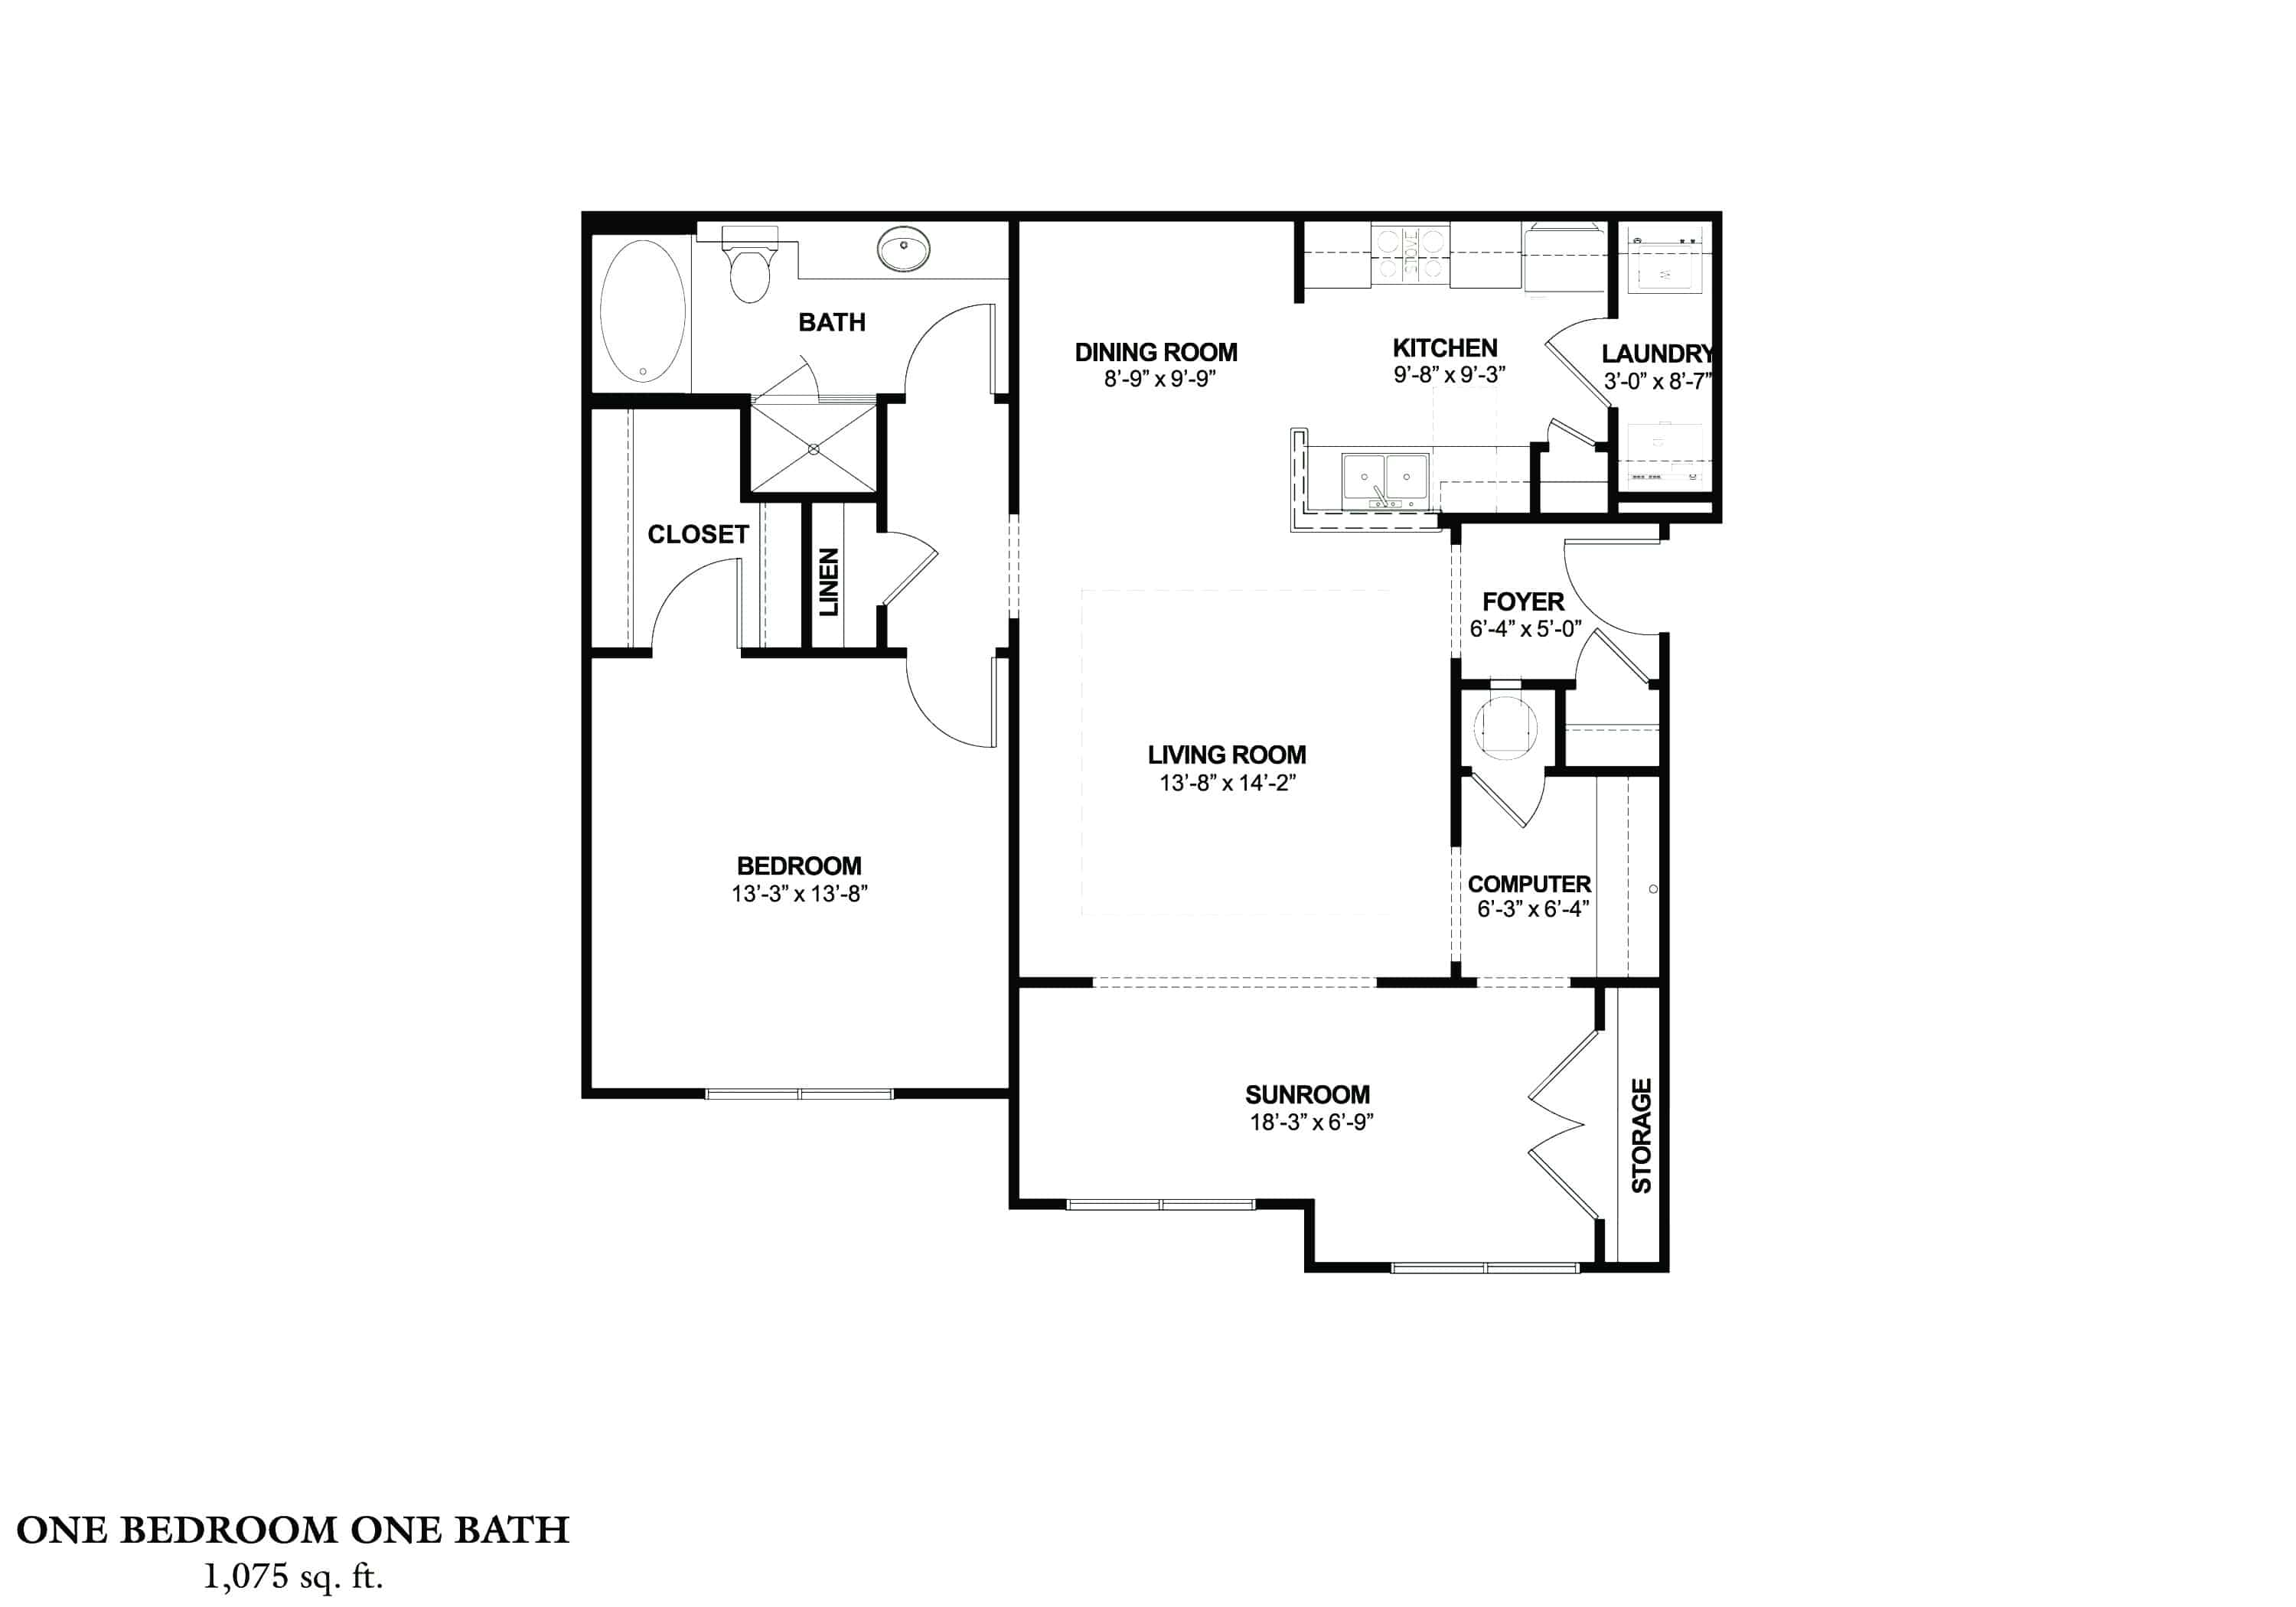 One Bedroom (ASR) Approx. 1,075 sq. ft. with Sunroom From $885 Beds 1 Baths 1 Apply Now The Wedgewood Approx. 1,405 sq. ft. From $1,015 – $1,045 Beds 2 Baths 2 Apply Now Three Bedroom (C) Approx. 1,655 sq. ft. Total – approx. 1,569 sq. ft. with 86 sq. ft. Deck or Patio< From $1,155 Beds 3 Baths 2 Apply Now